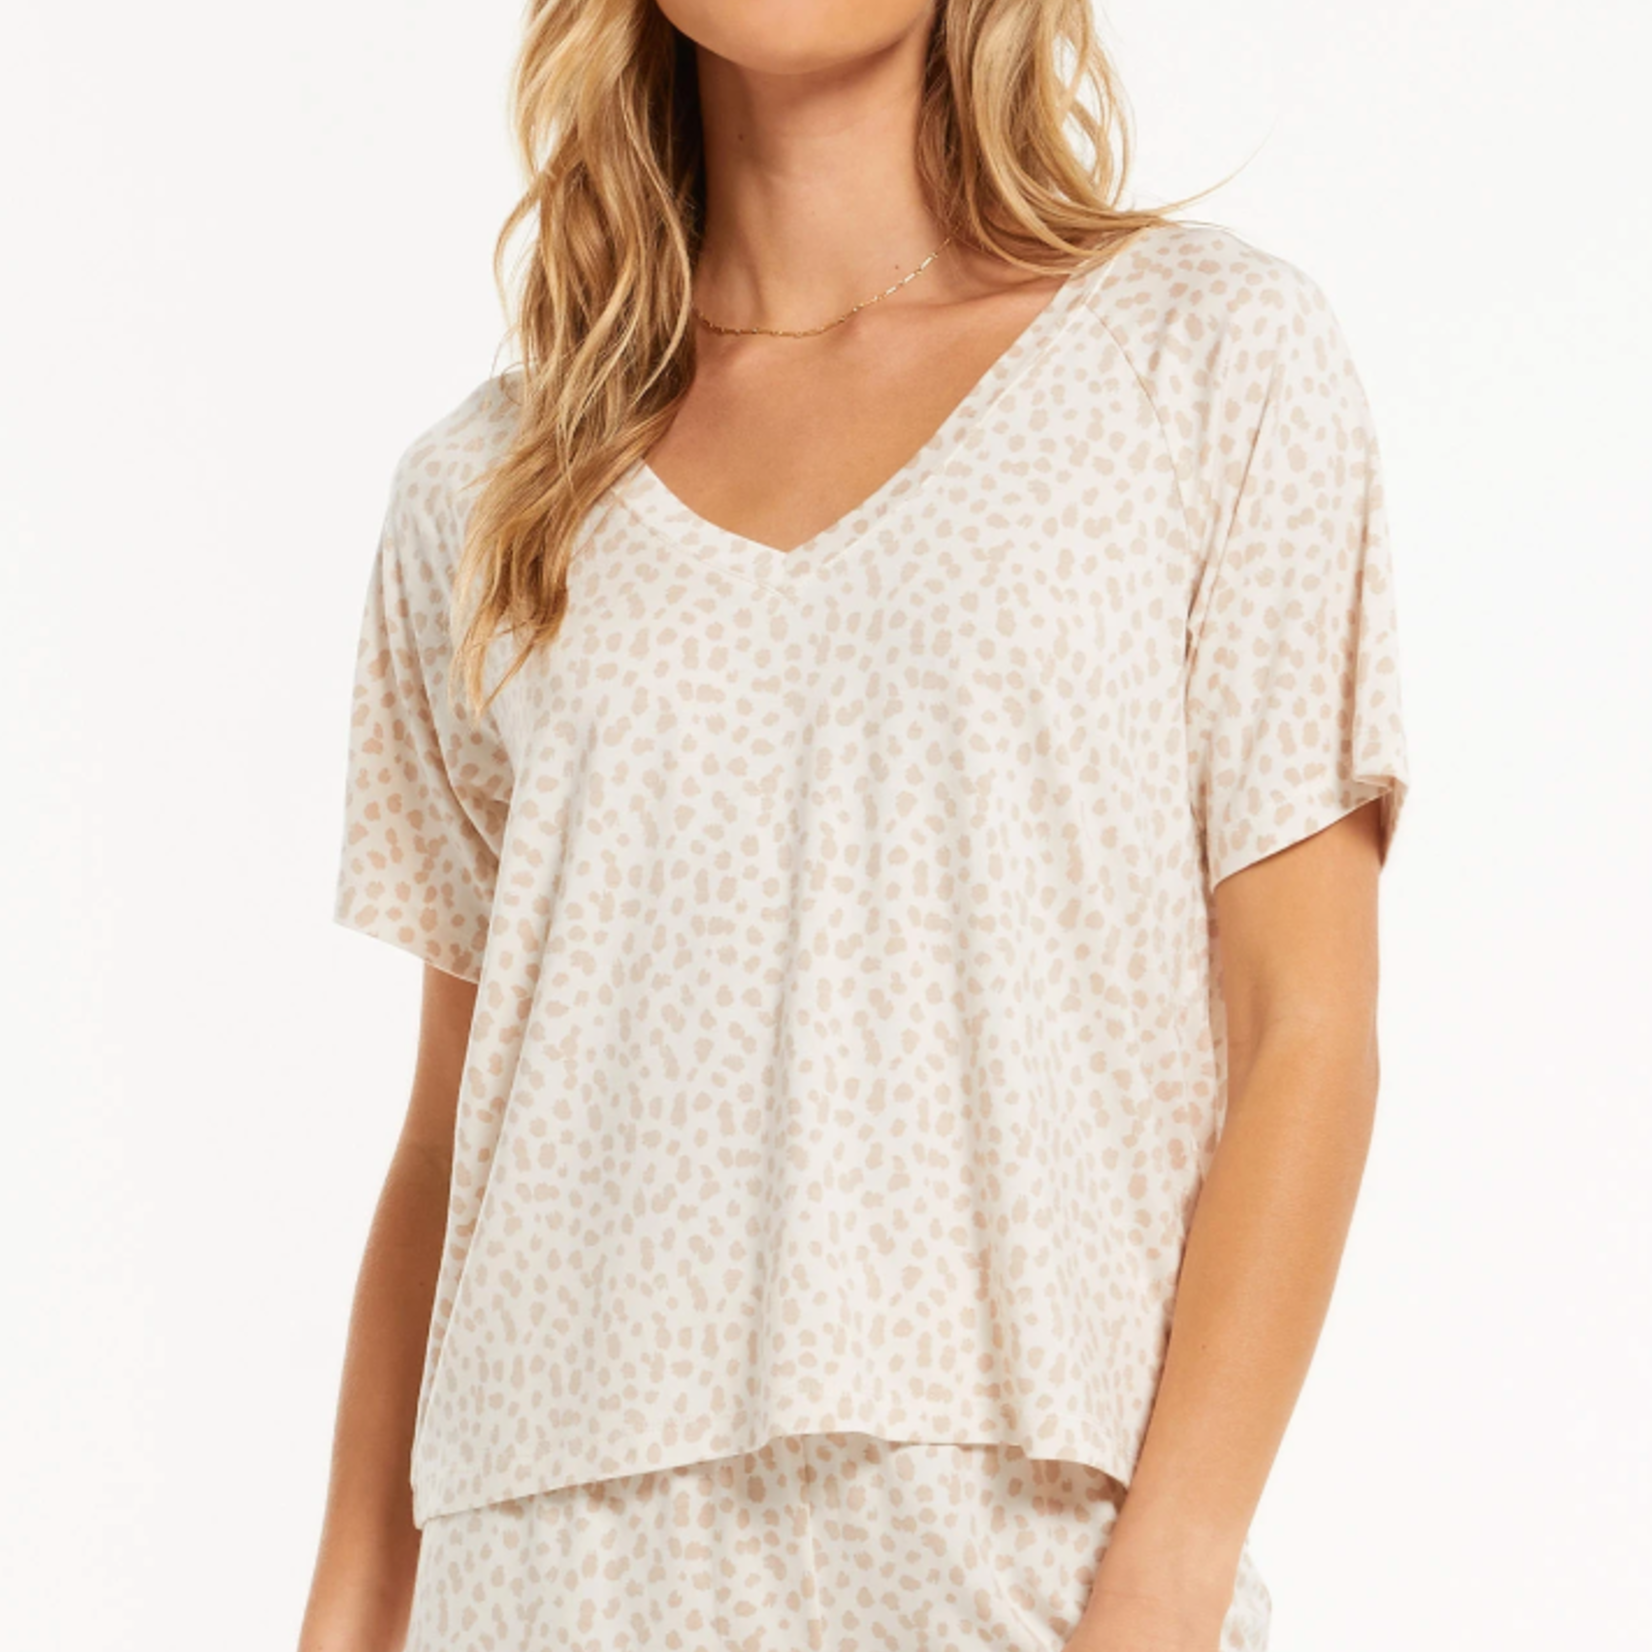 z supply Lay Low Leopard V-Neck Top